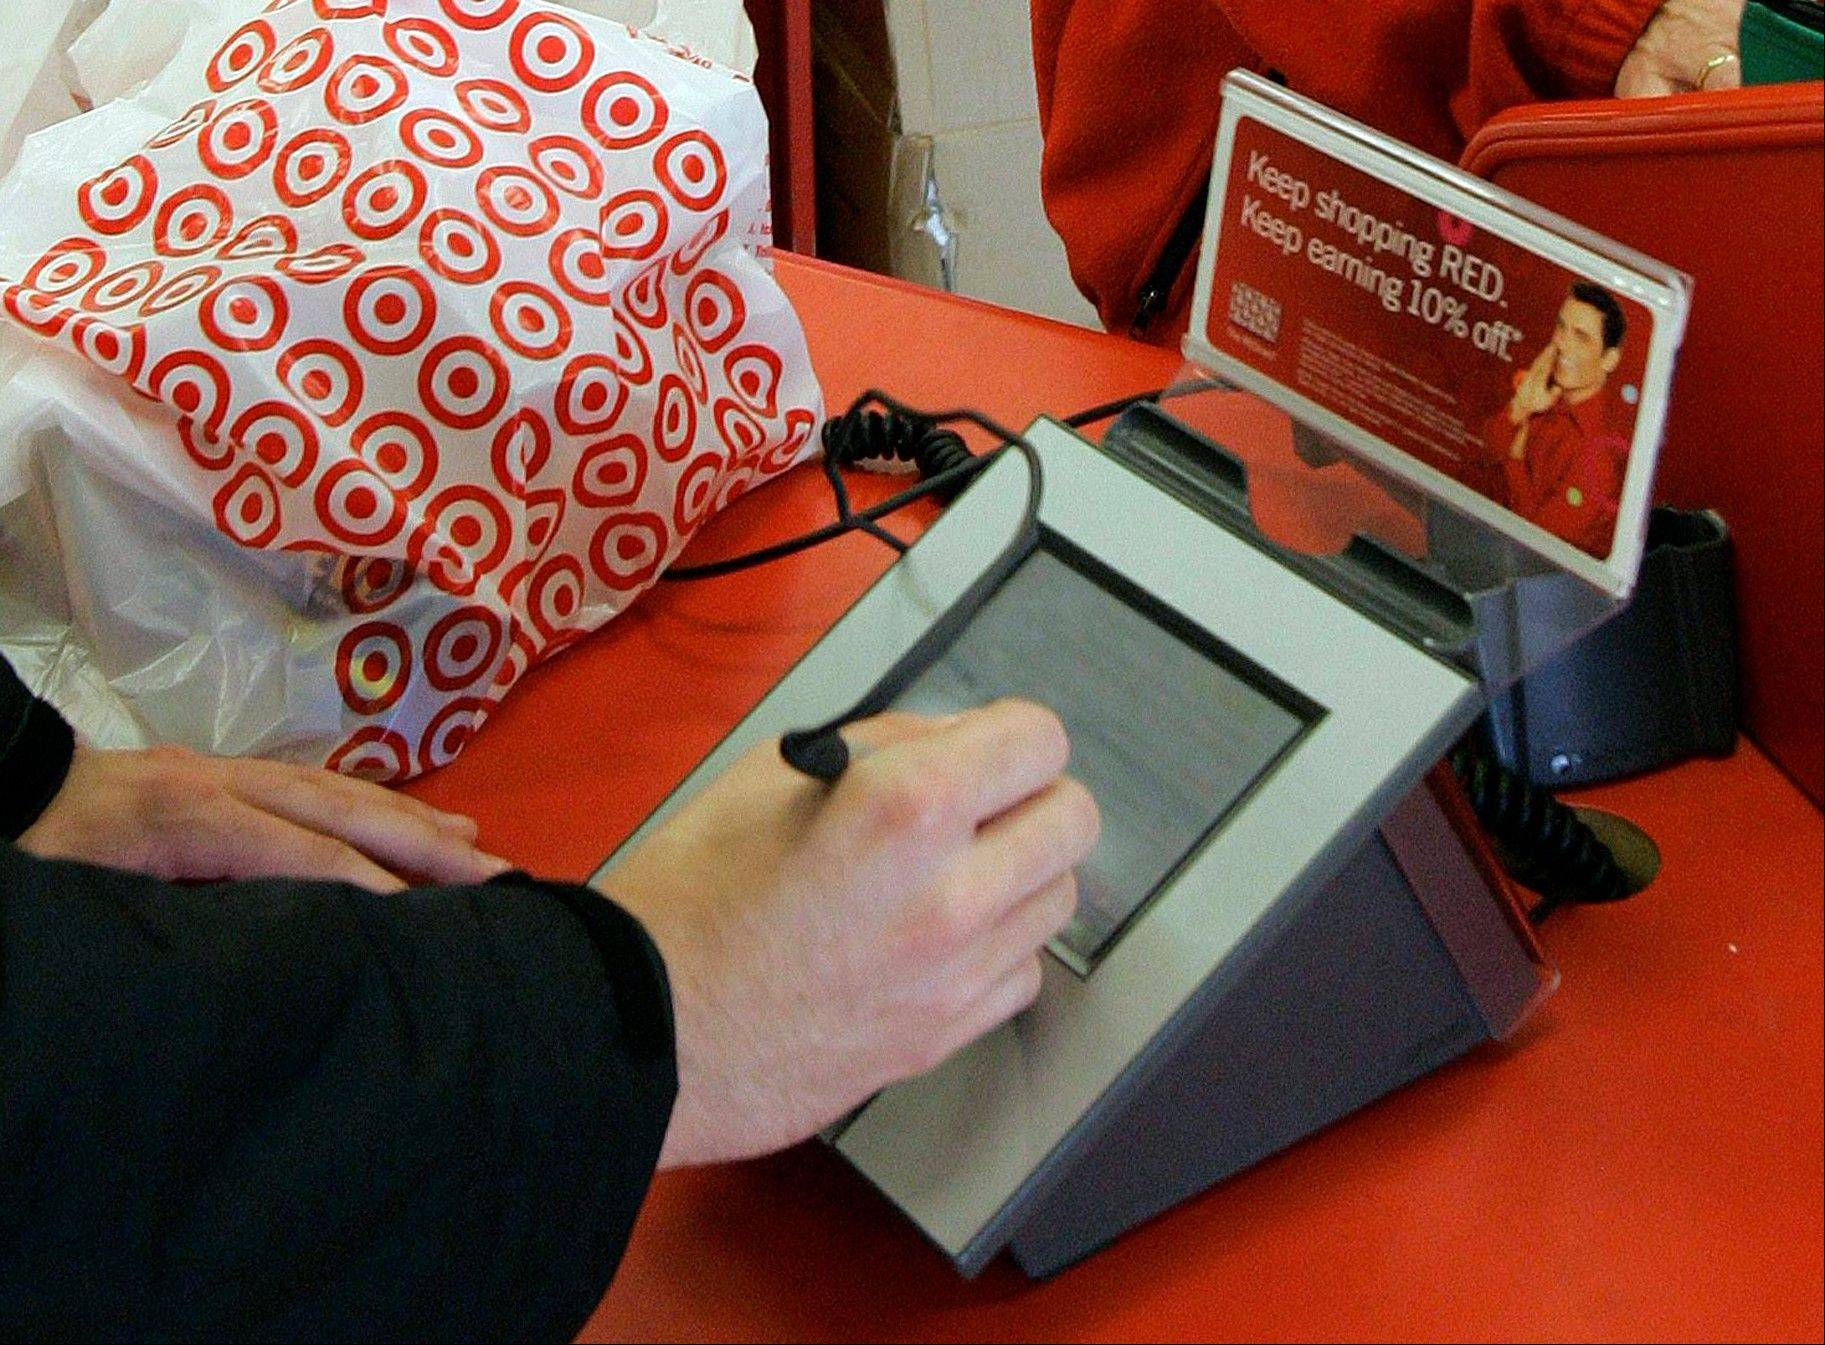 Target: 40 million card accounts may be breached